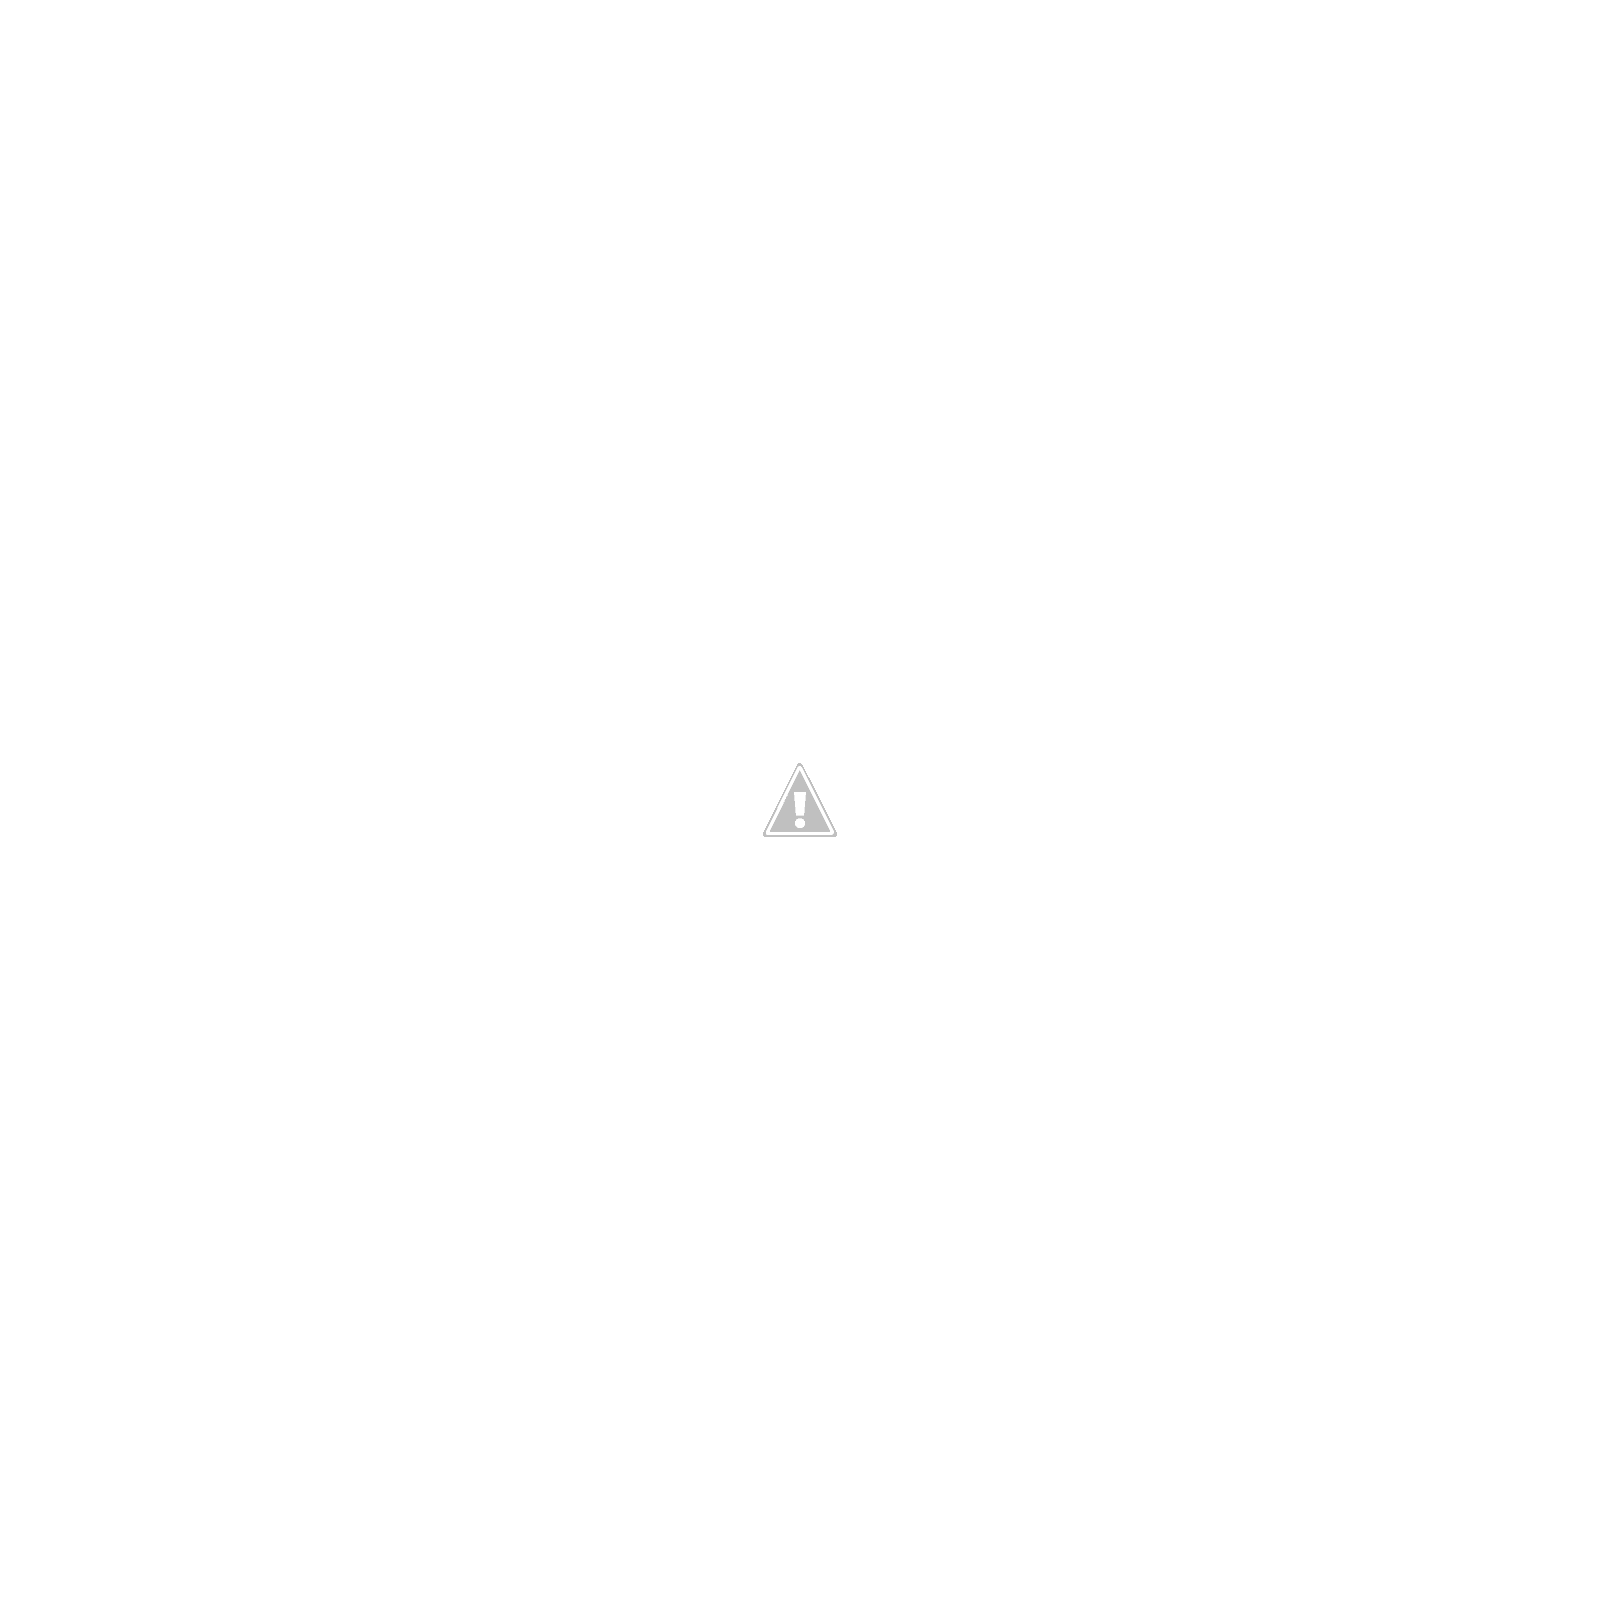 Just One Smile is Very Alluring - Chapter 1